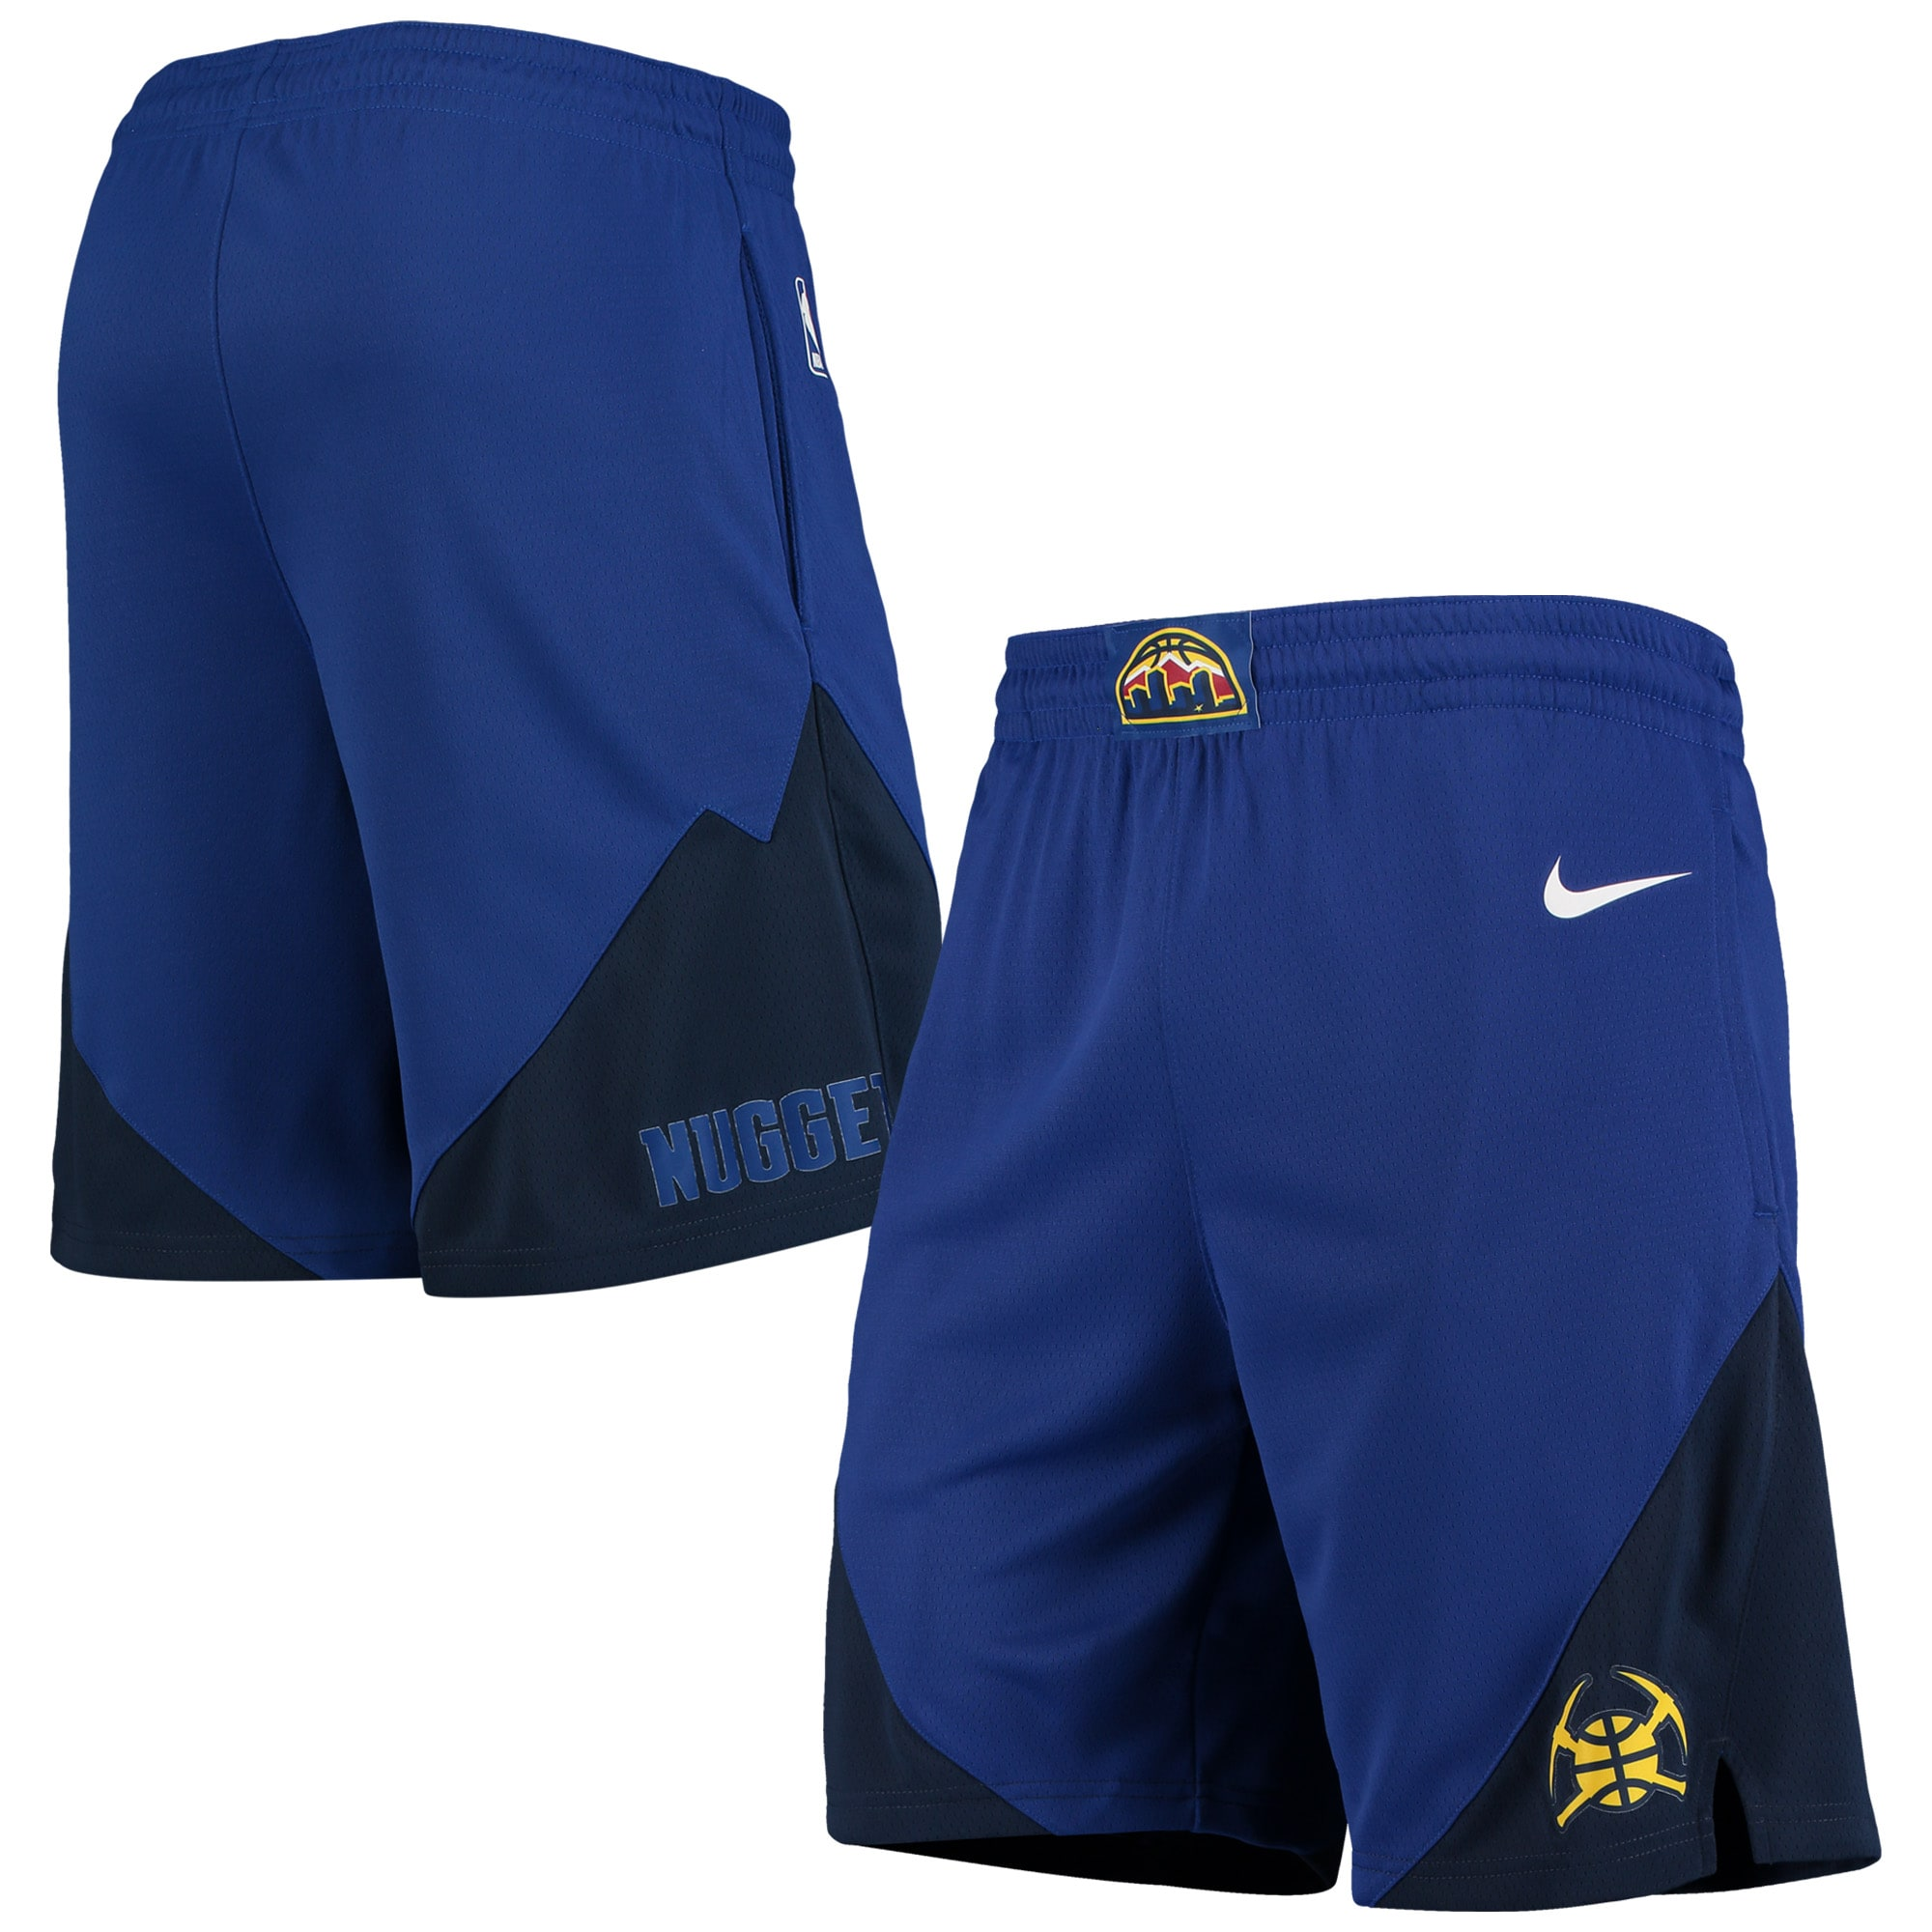 Denver Nuggets Nike 2019/20 Statement Edition Swingman Shorts - Blue